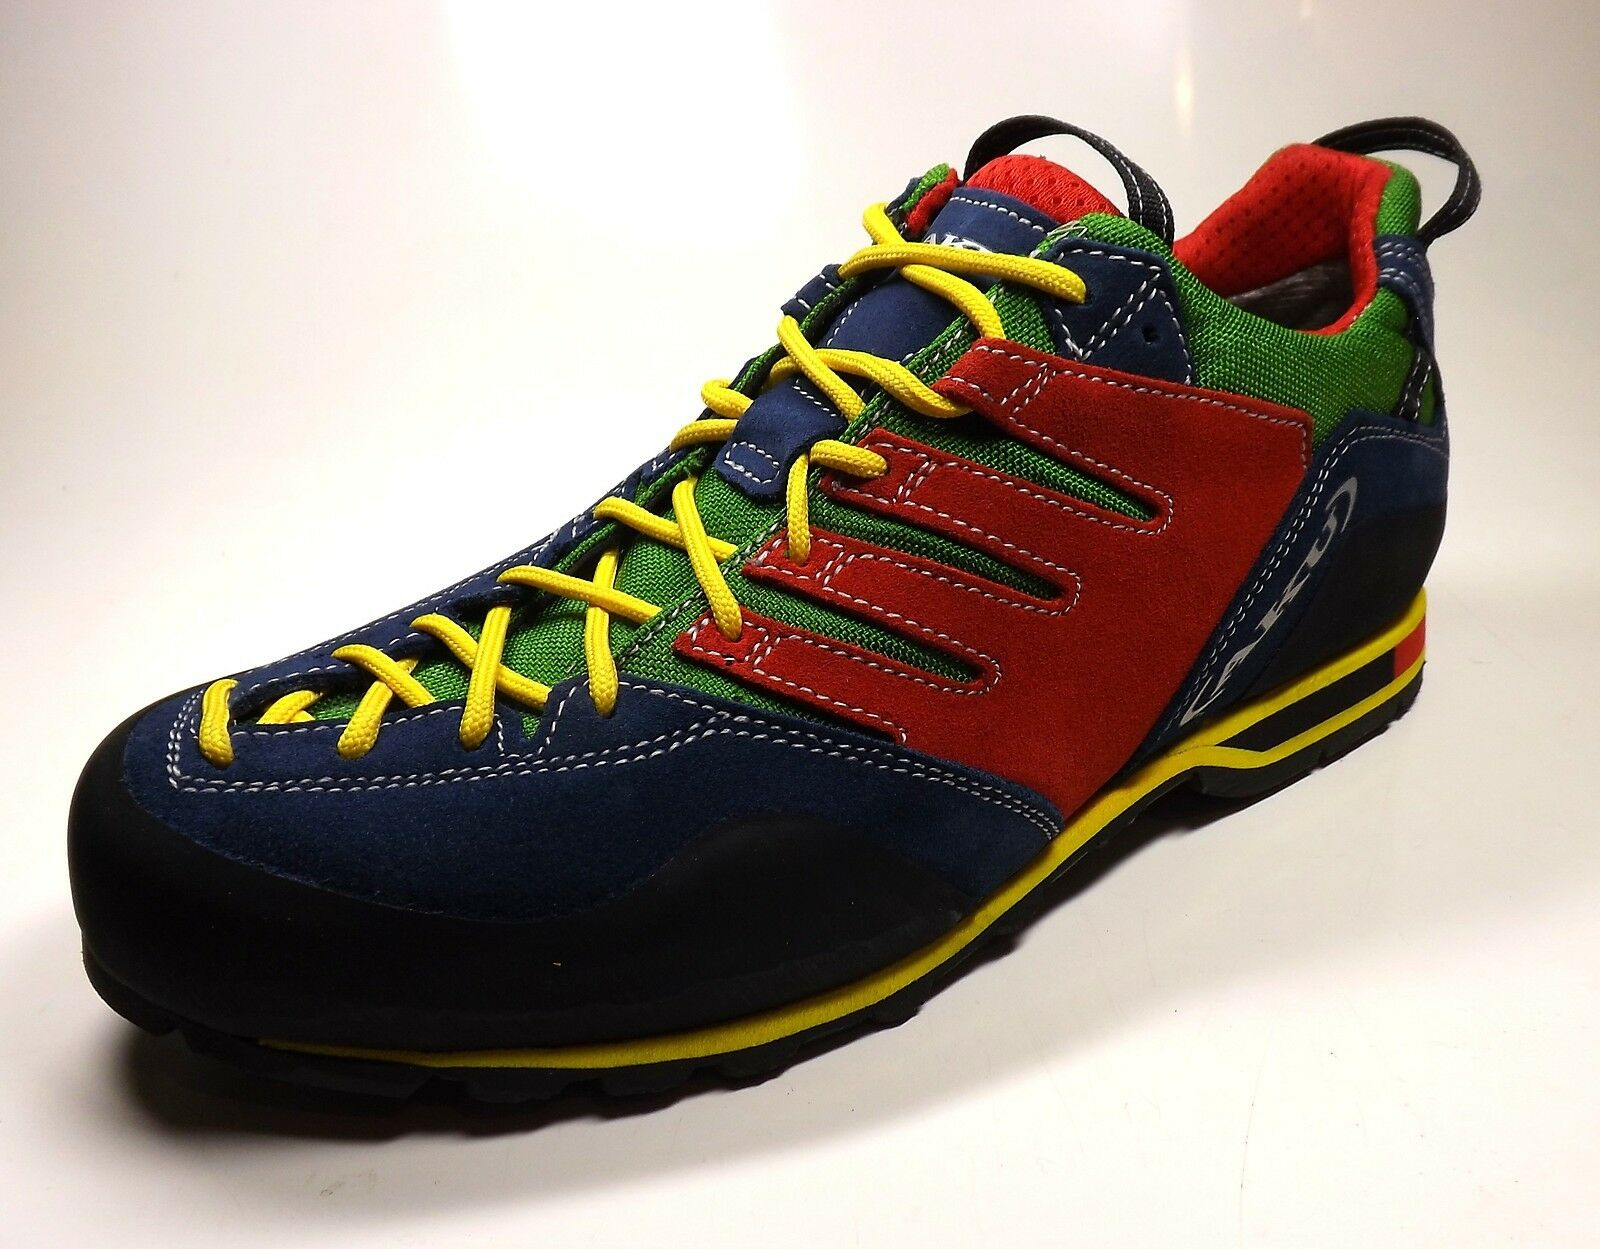 Aku Gonna II GTX Approach Scarpe, MultiColoreeee, Scarpe da Trekking